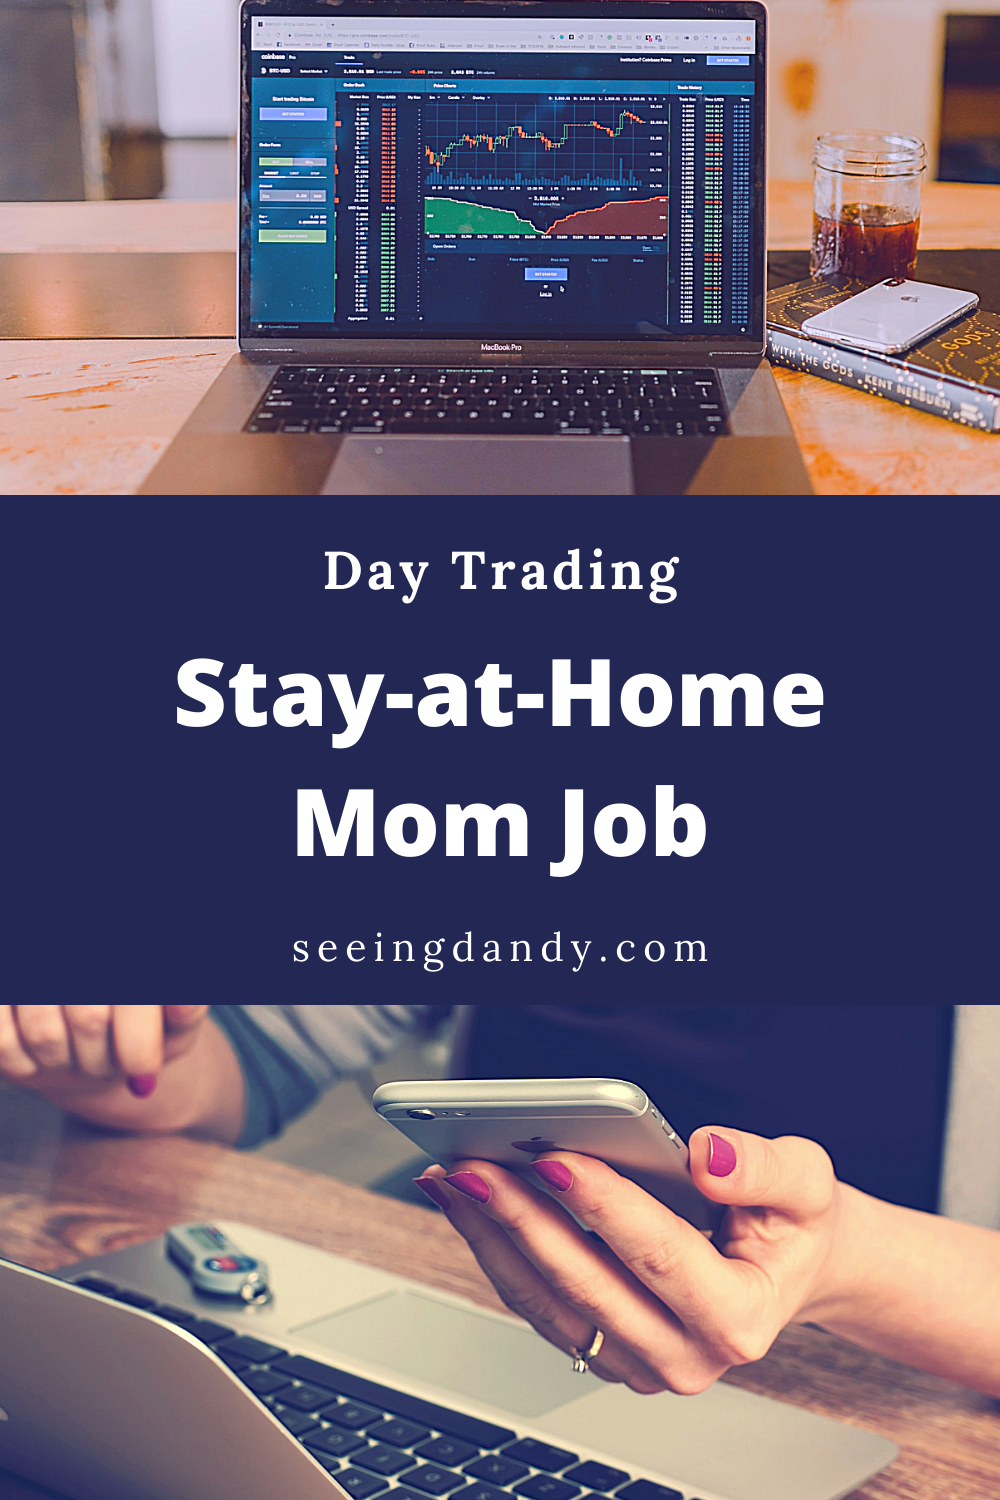 Stay at home day trading job, stock market